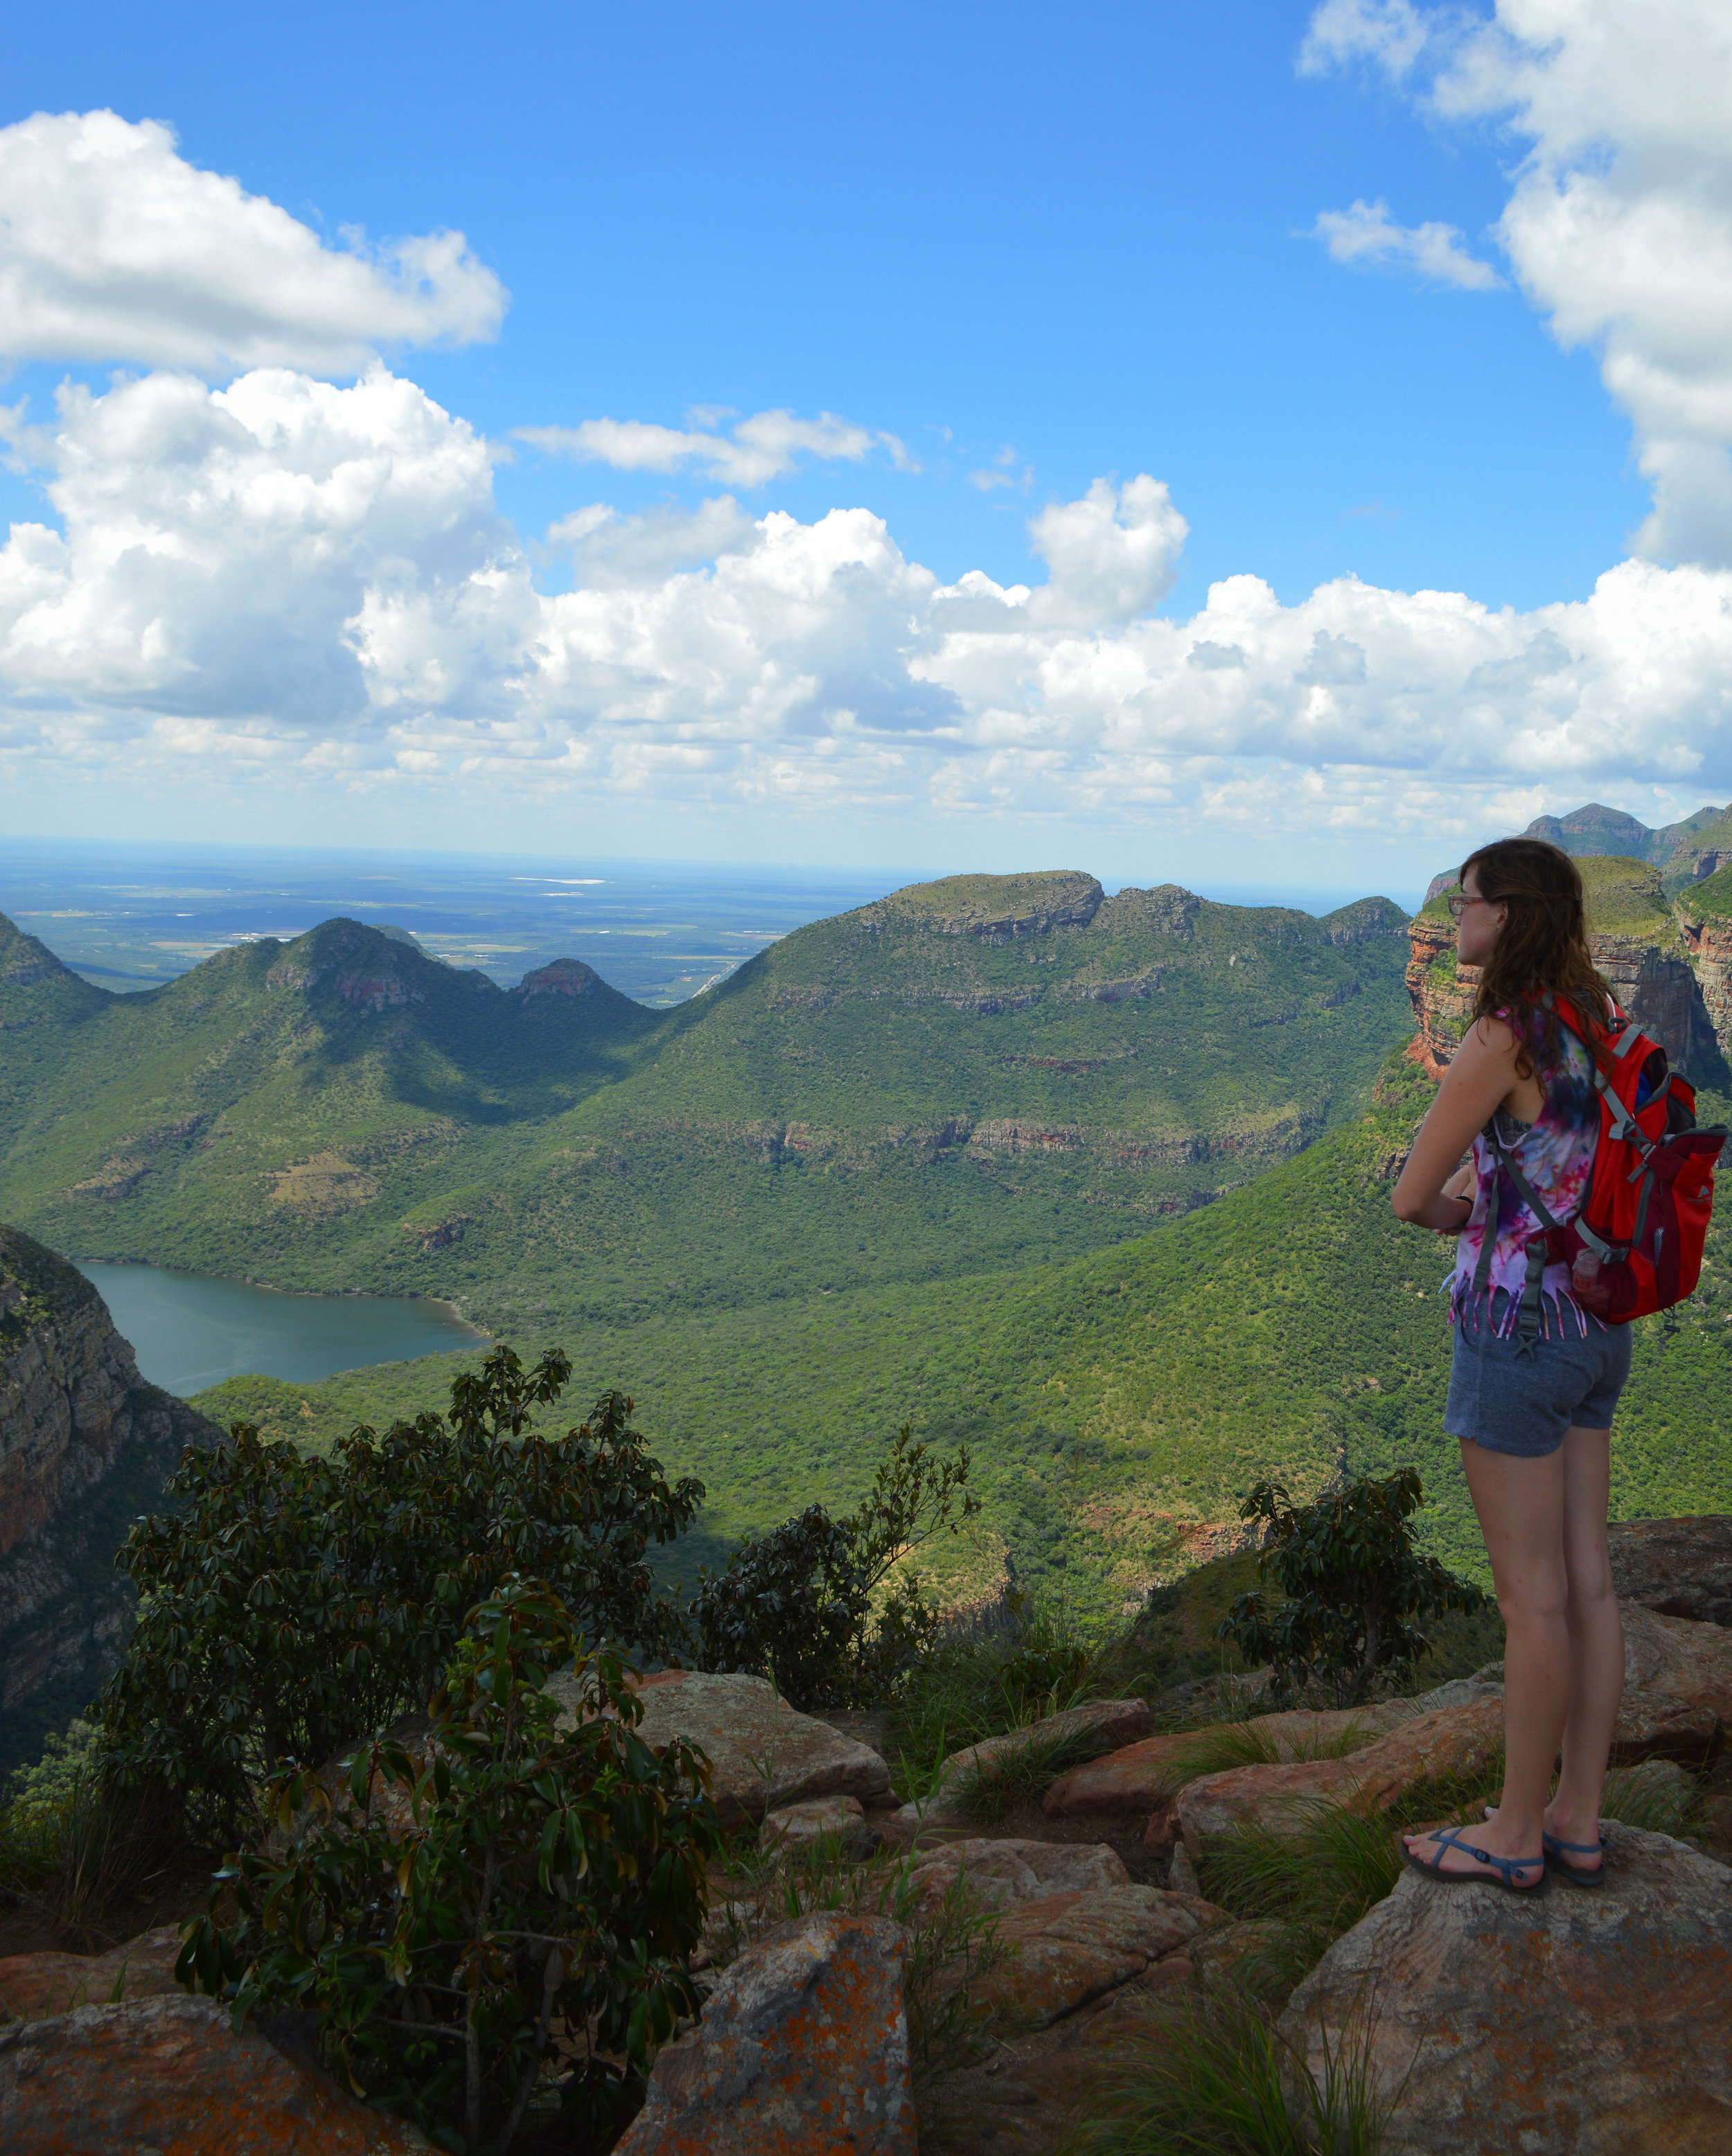 Becca overlooking the largest green canyon in the world